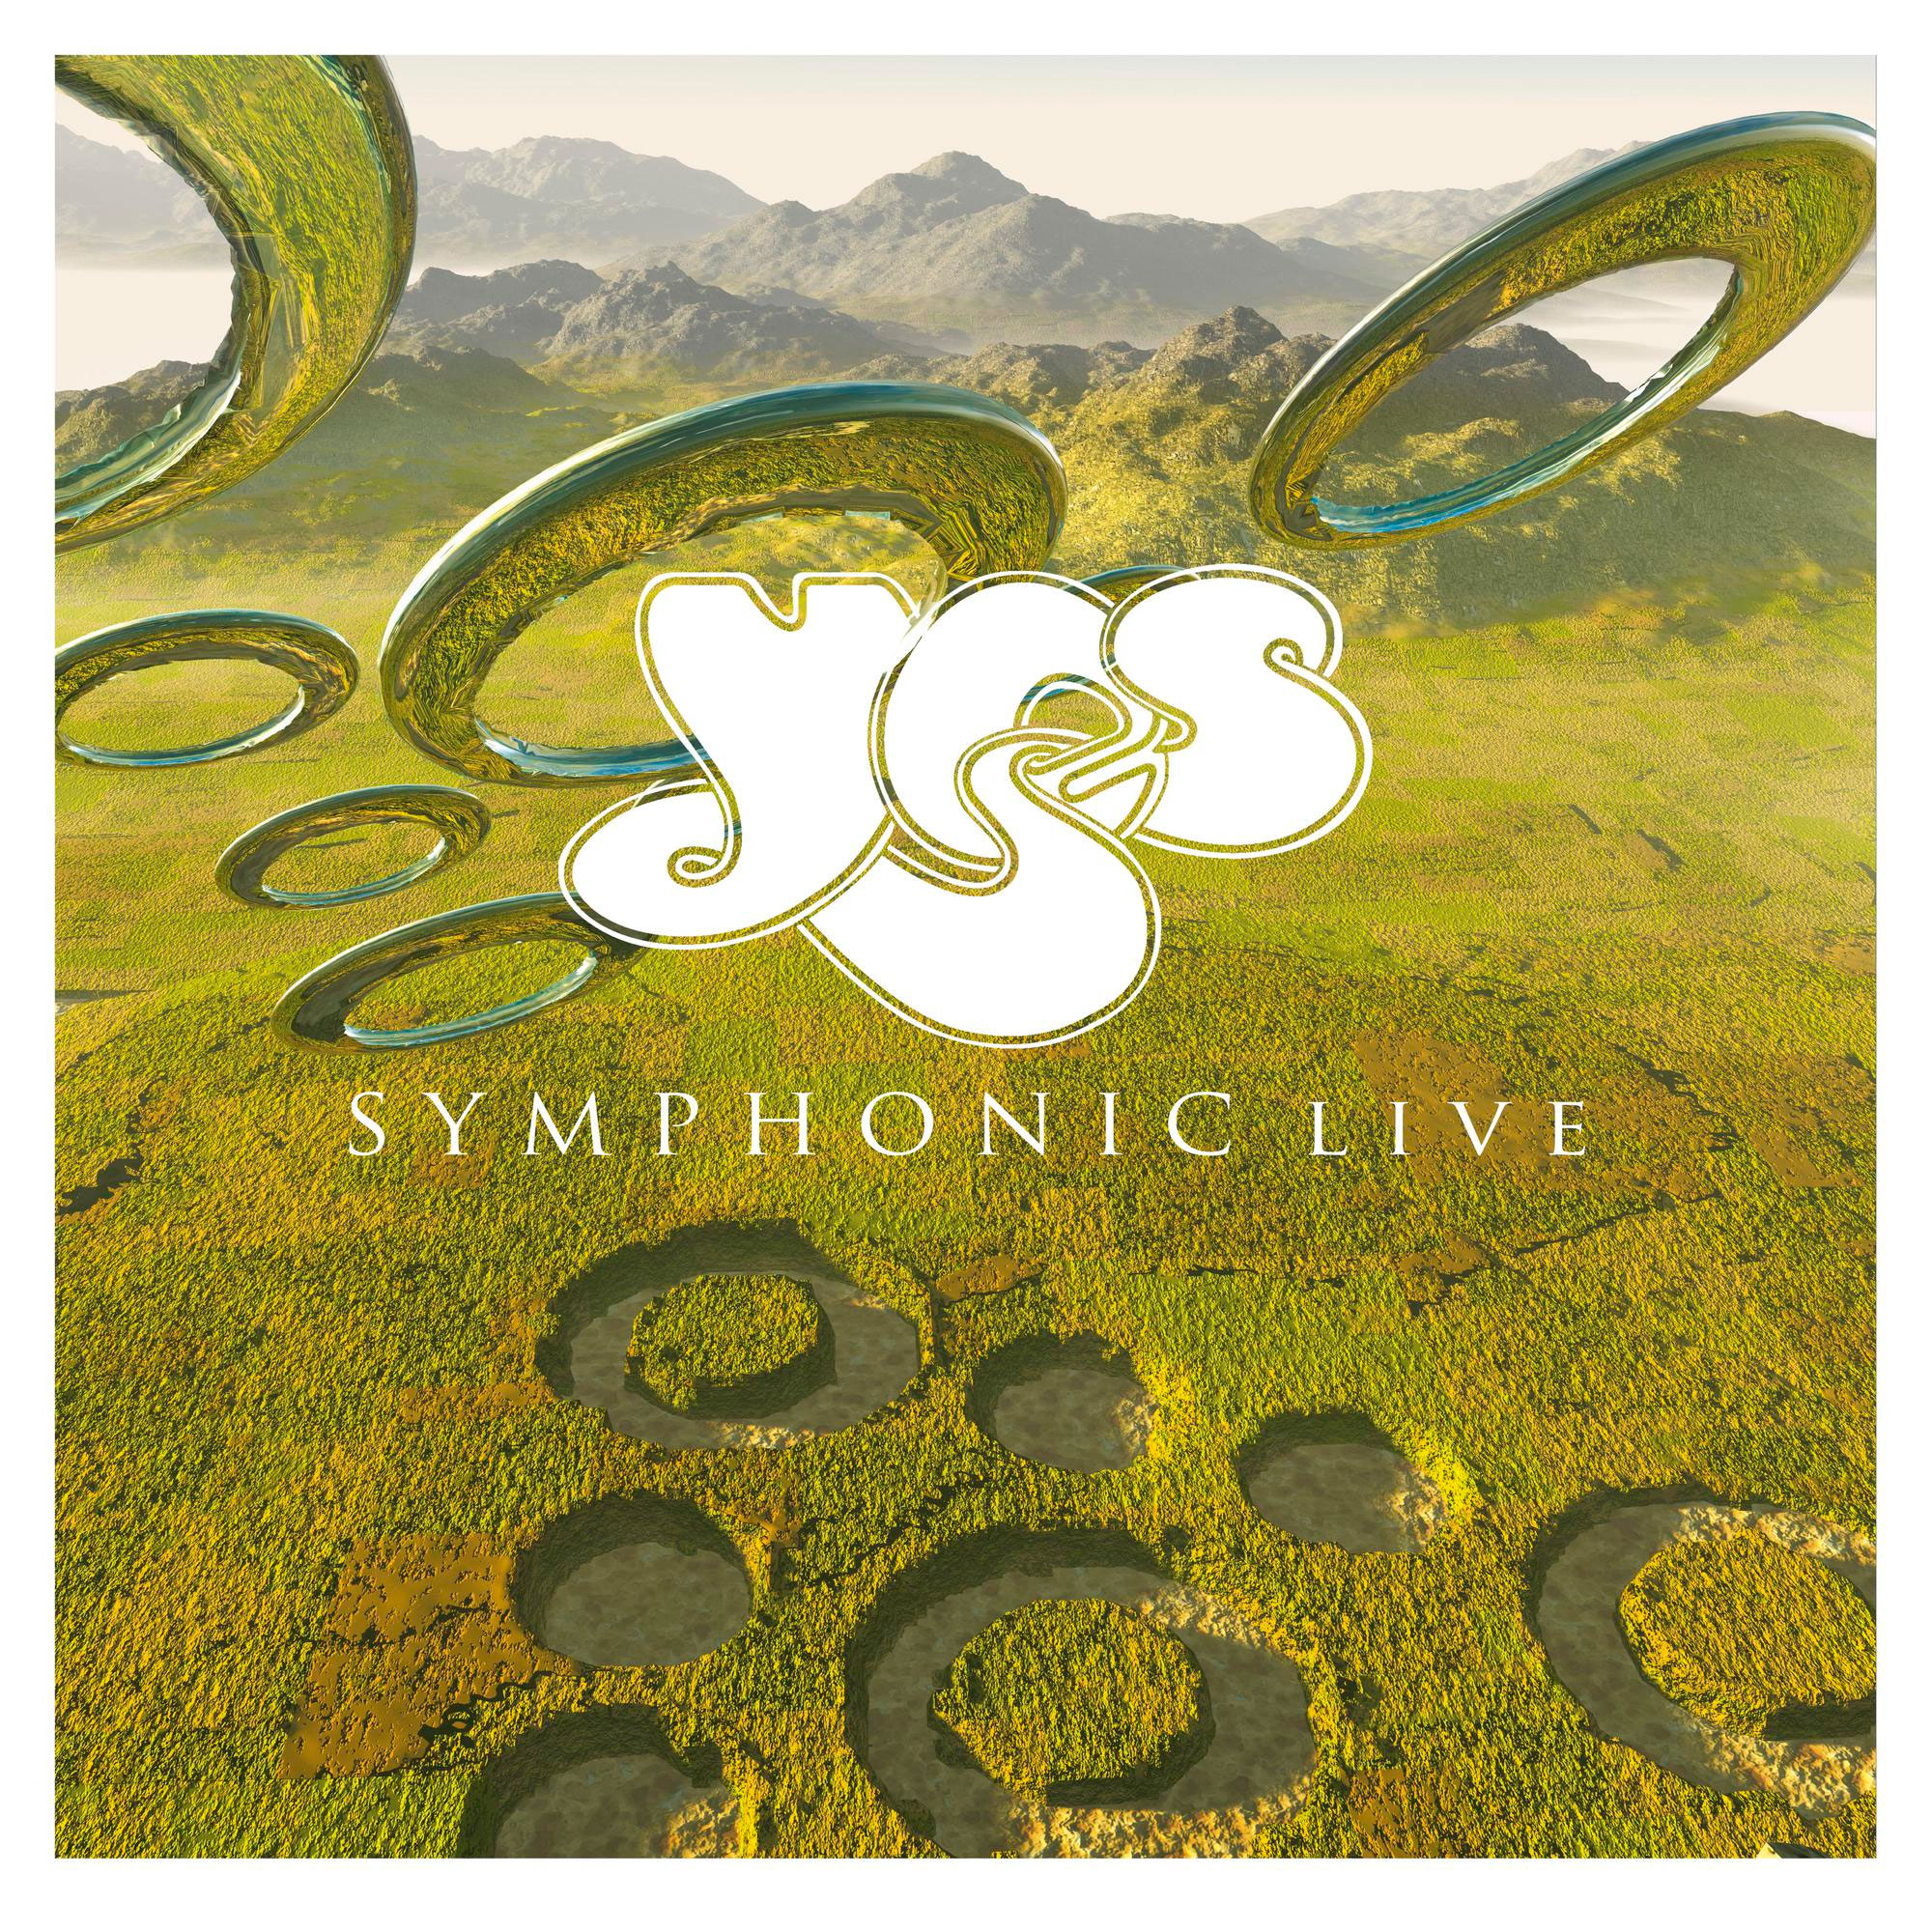 Yes Symphonic Live Numbered Limited Edition 180g 2LP & CD